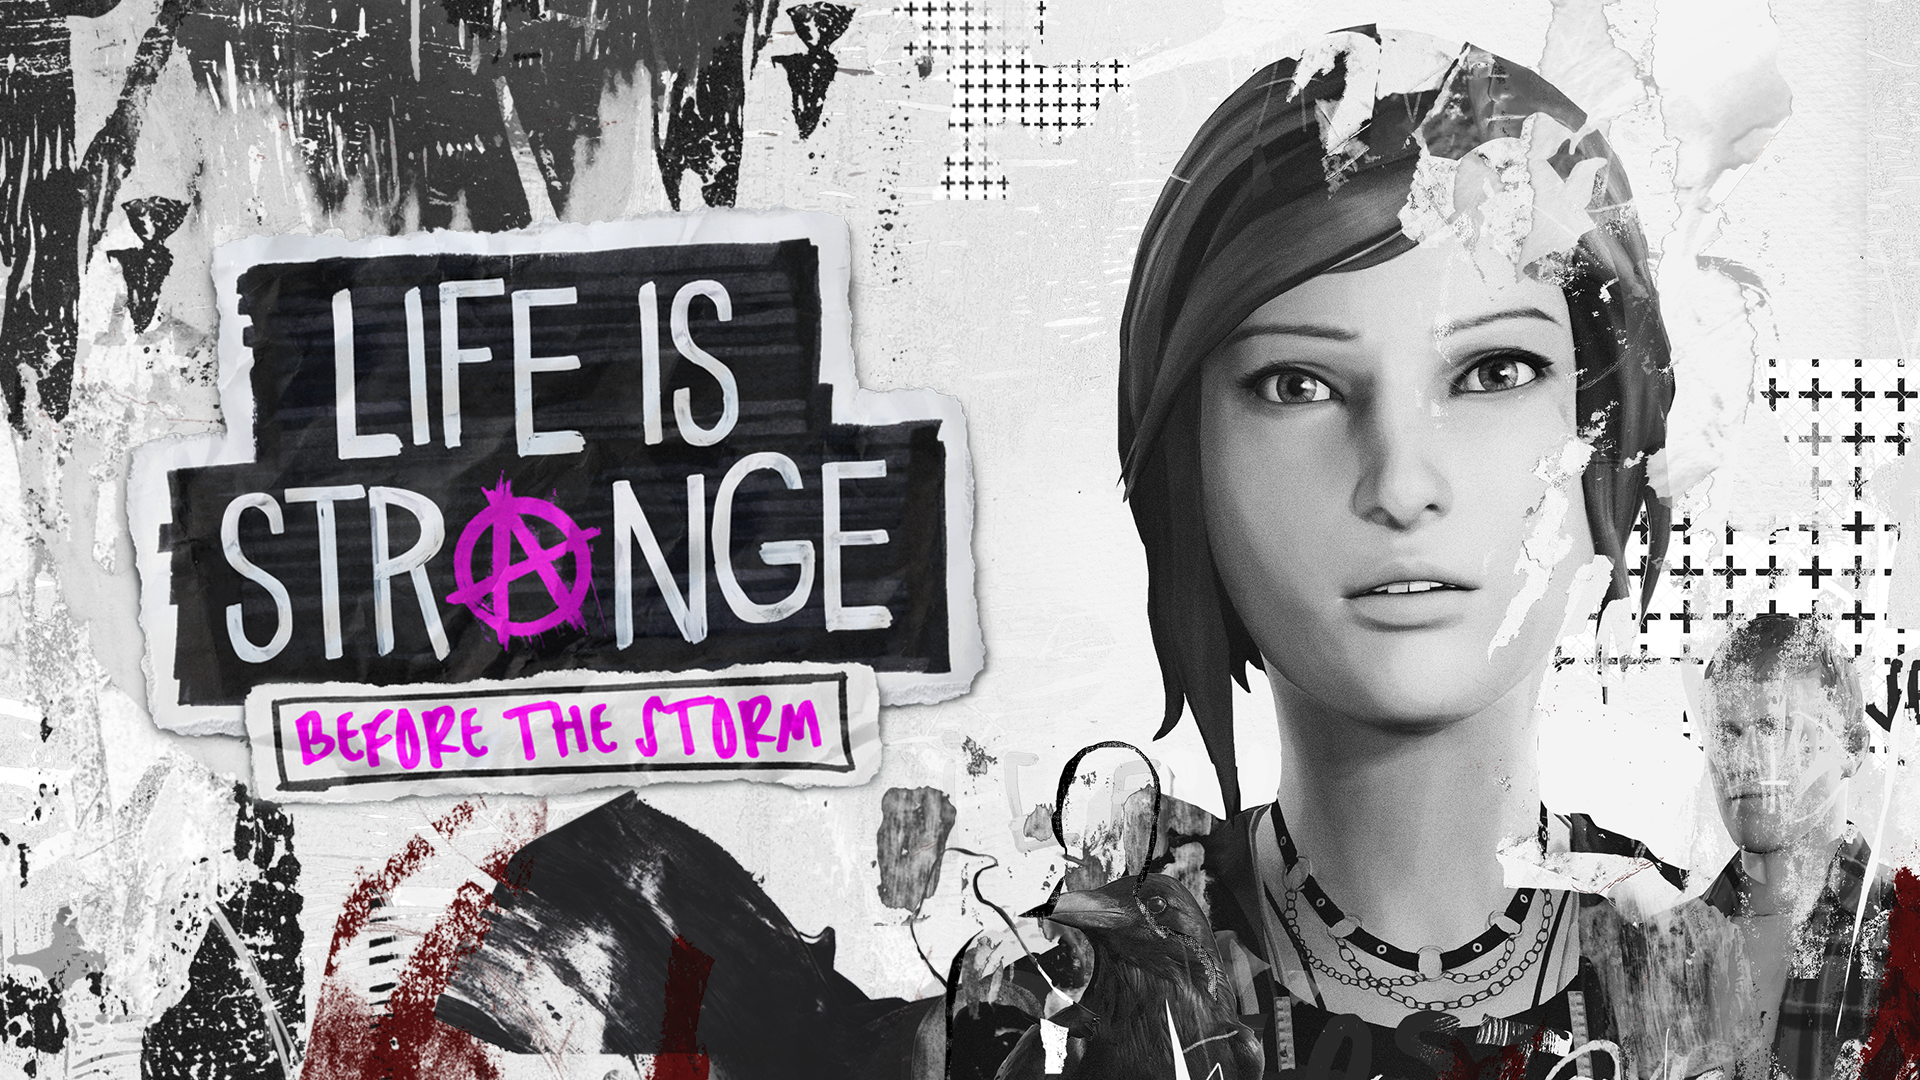 Video Game - Life is Strange: Before The Storm  Chloe Price Wallpaper